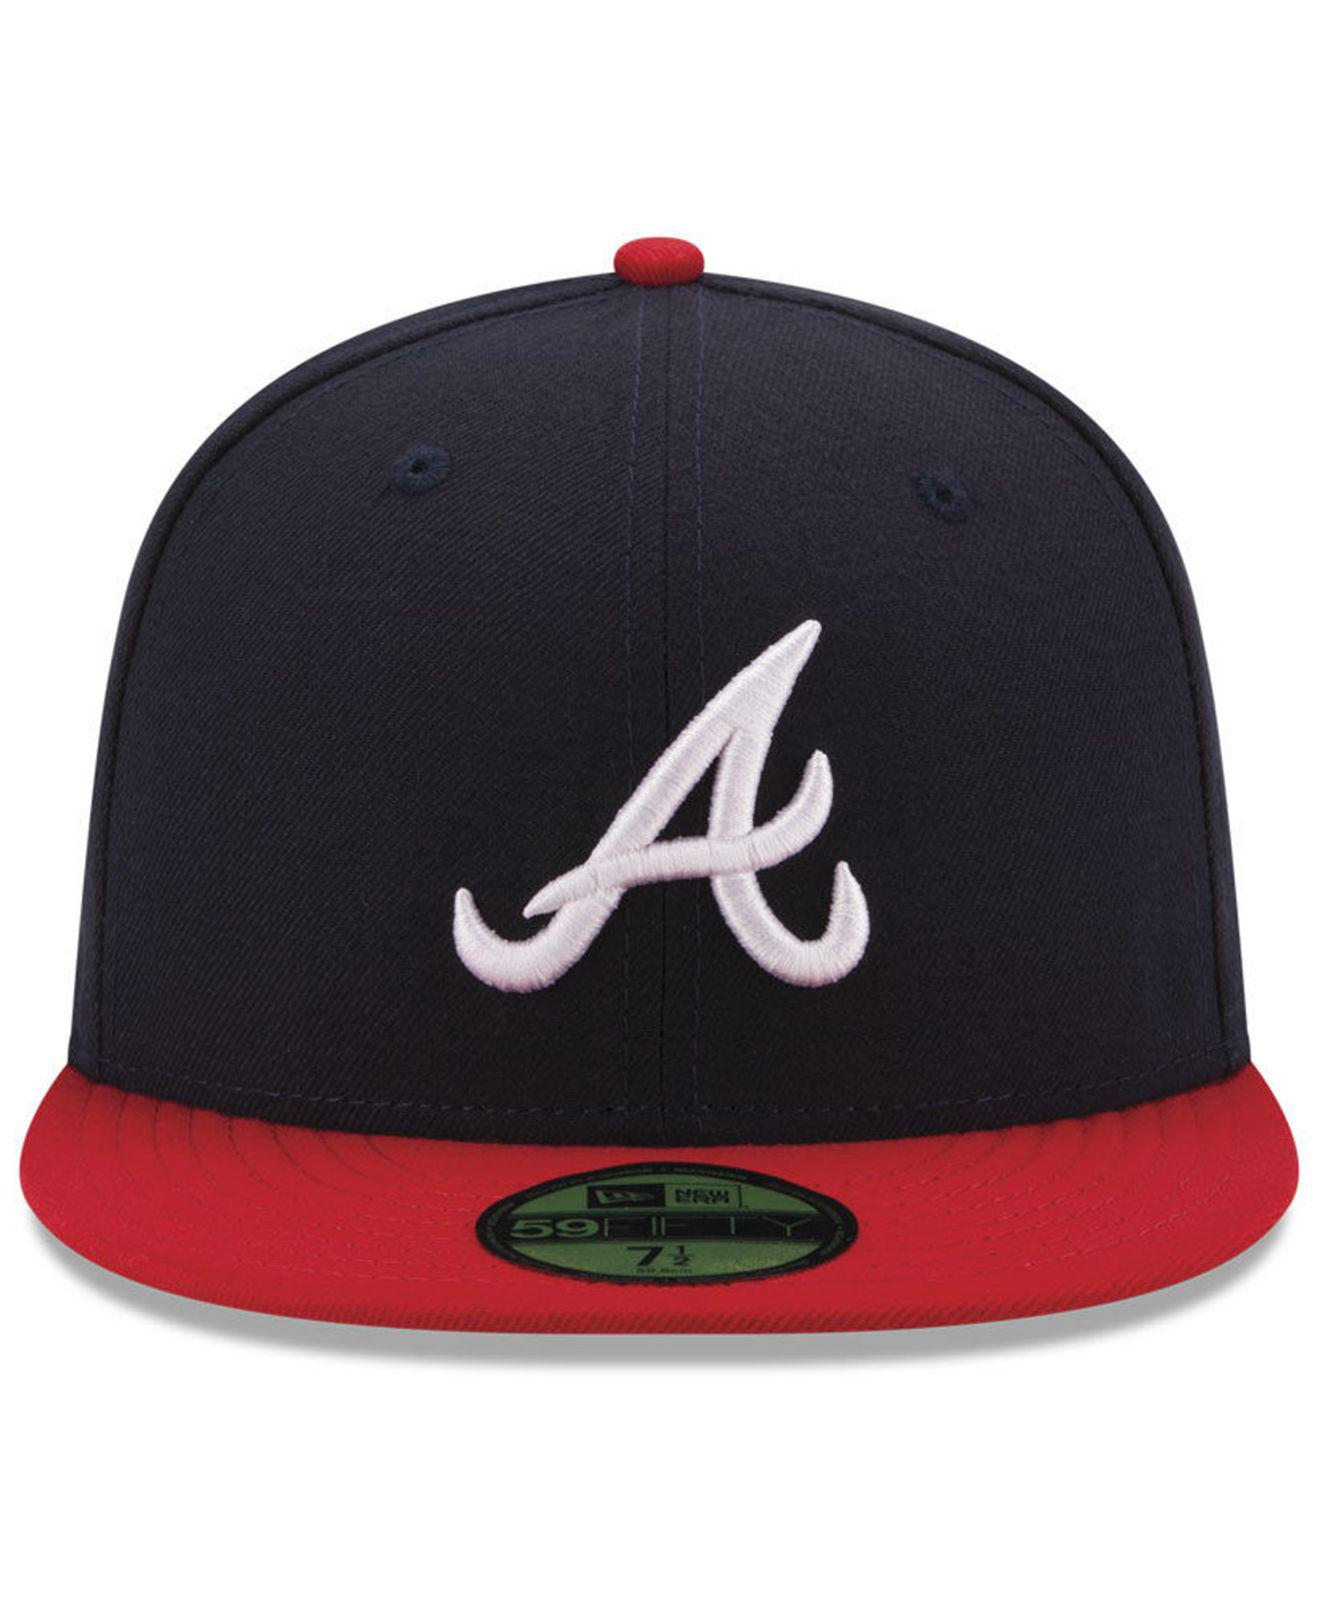 new styles 843f4 b4d26 Lyst - KTZ Atlanta Braves 9-11 Memorial 59fifty Fitted Cap in Blue for Men